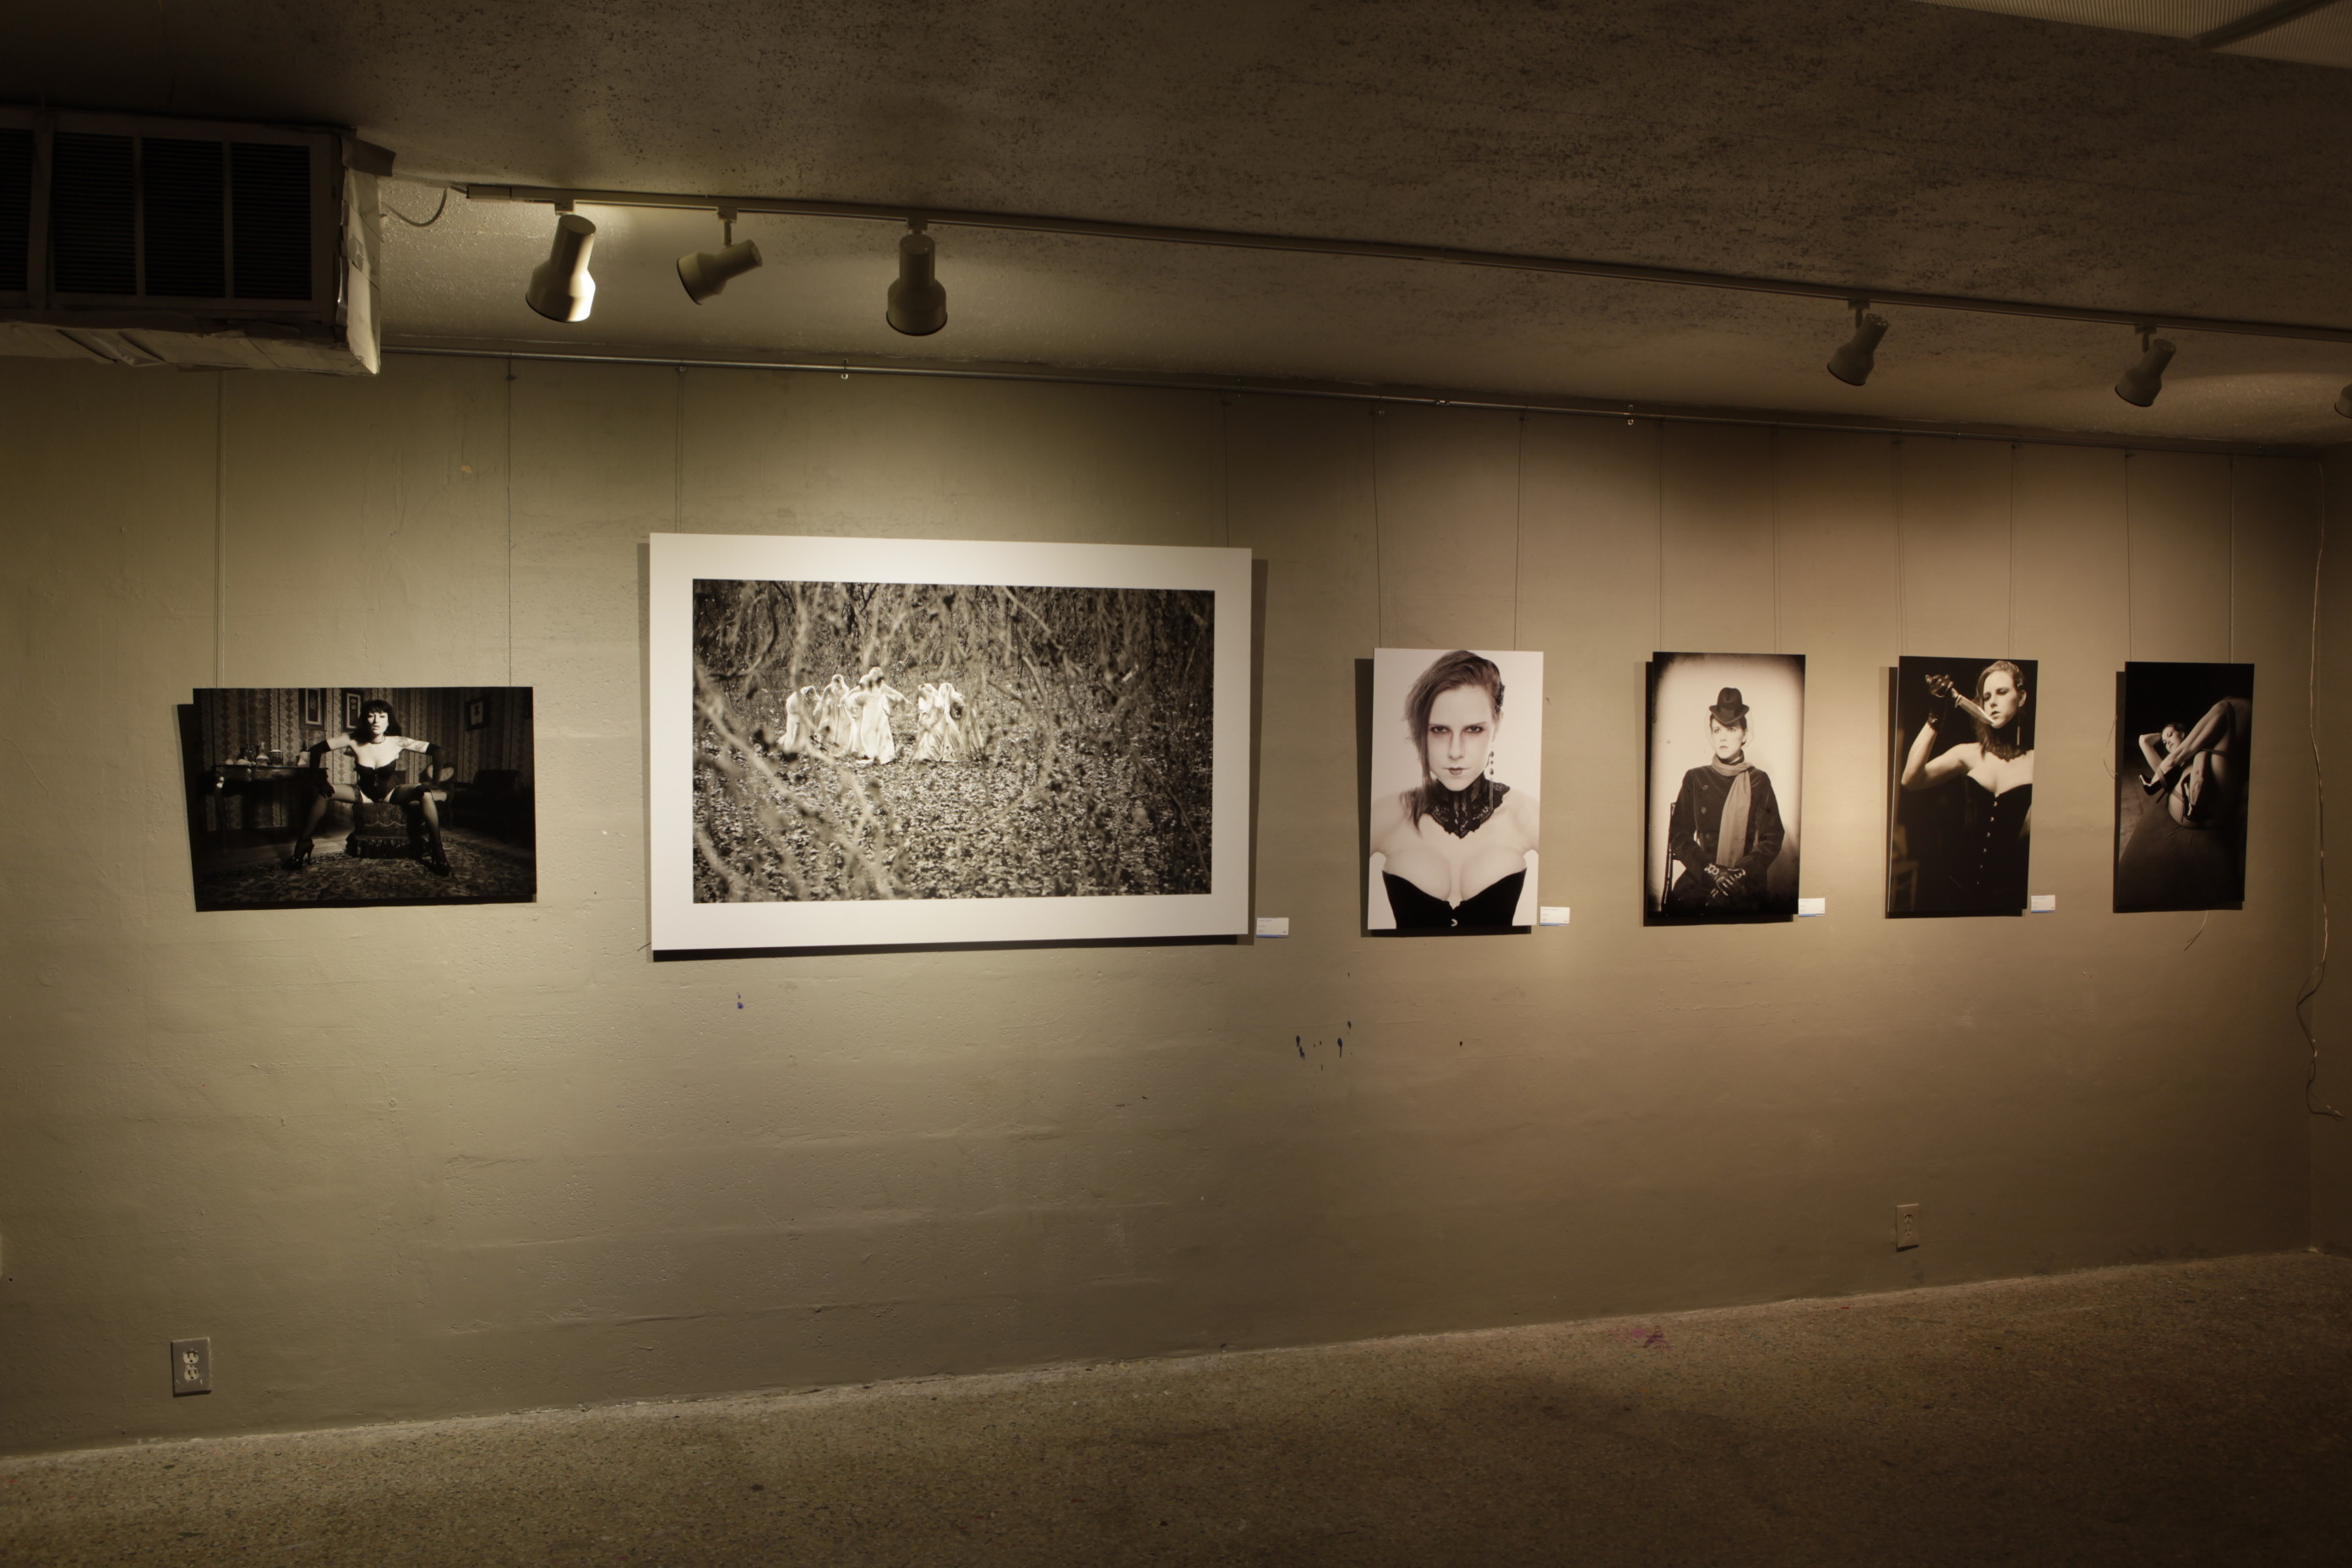 Some of my work on display at Off Center Art Center